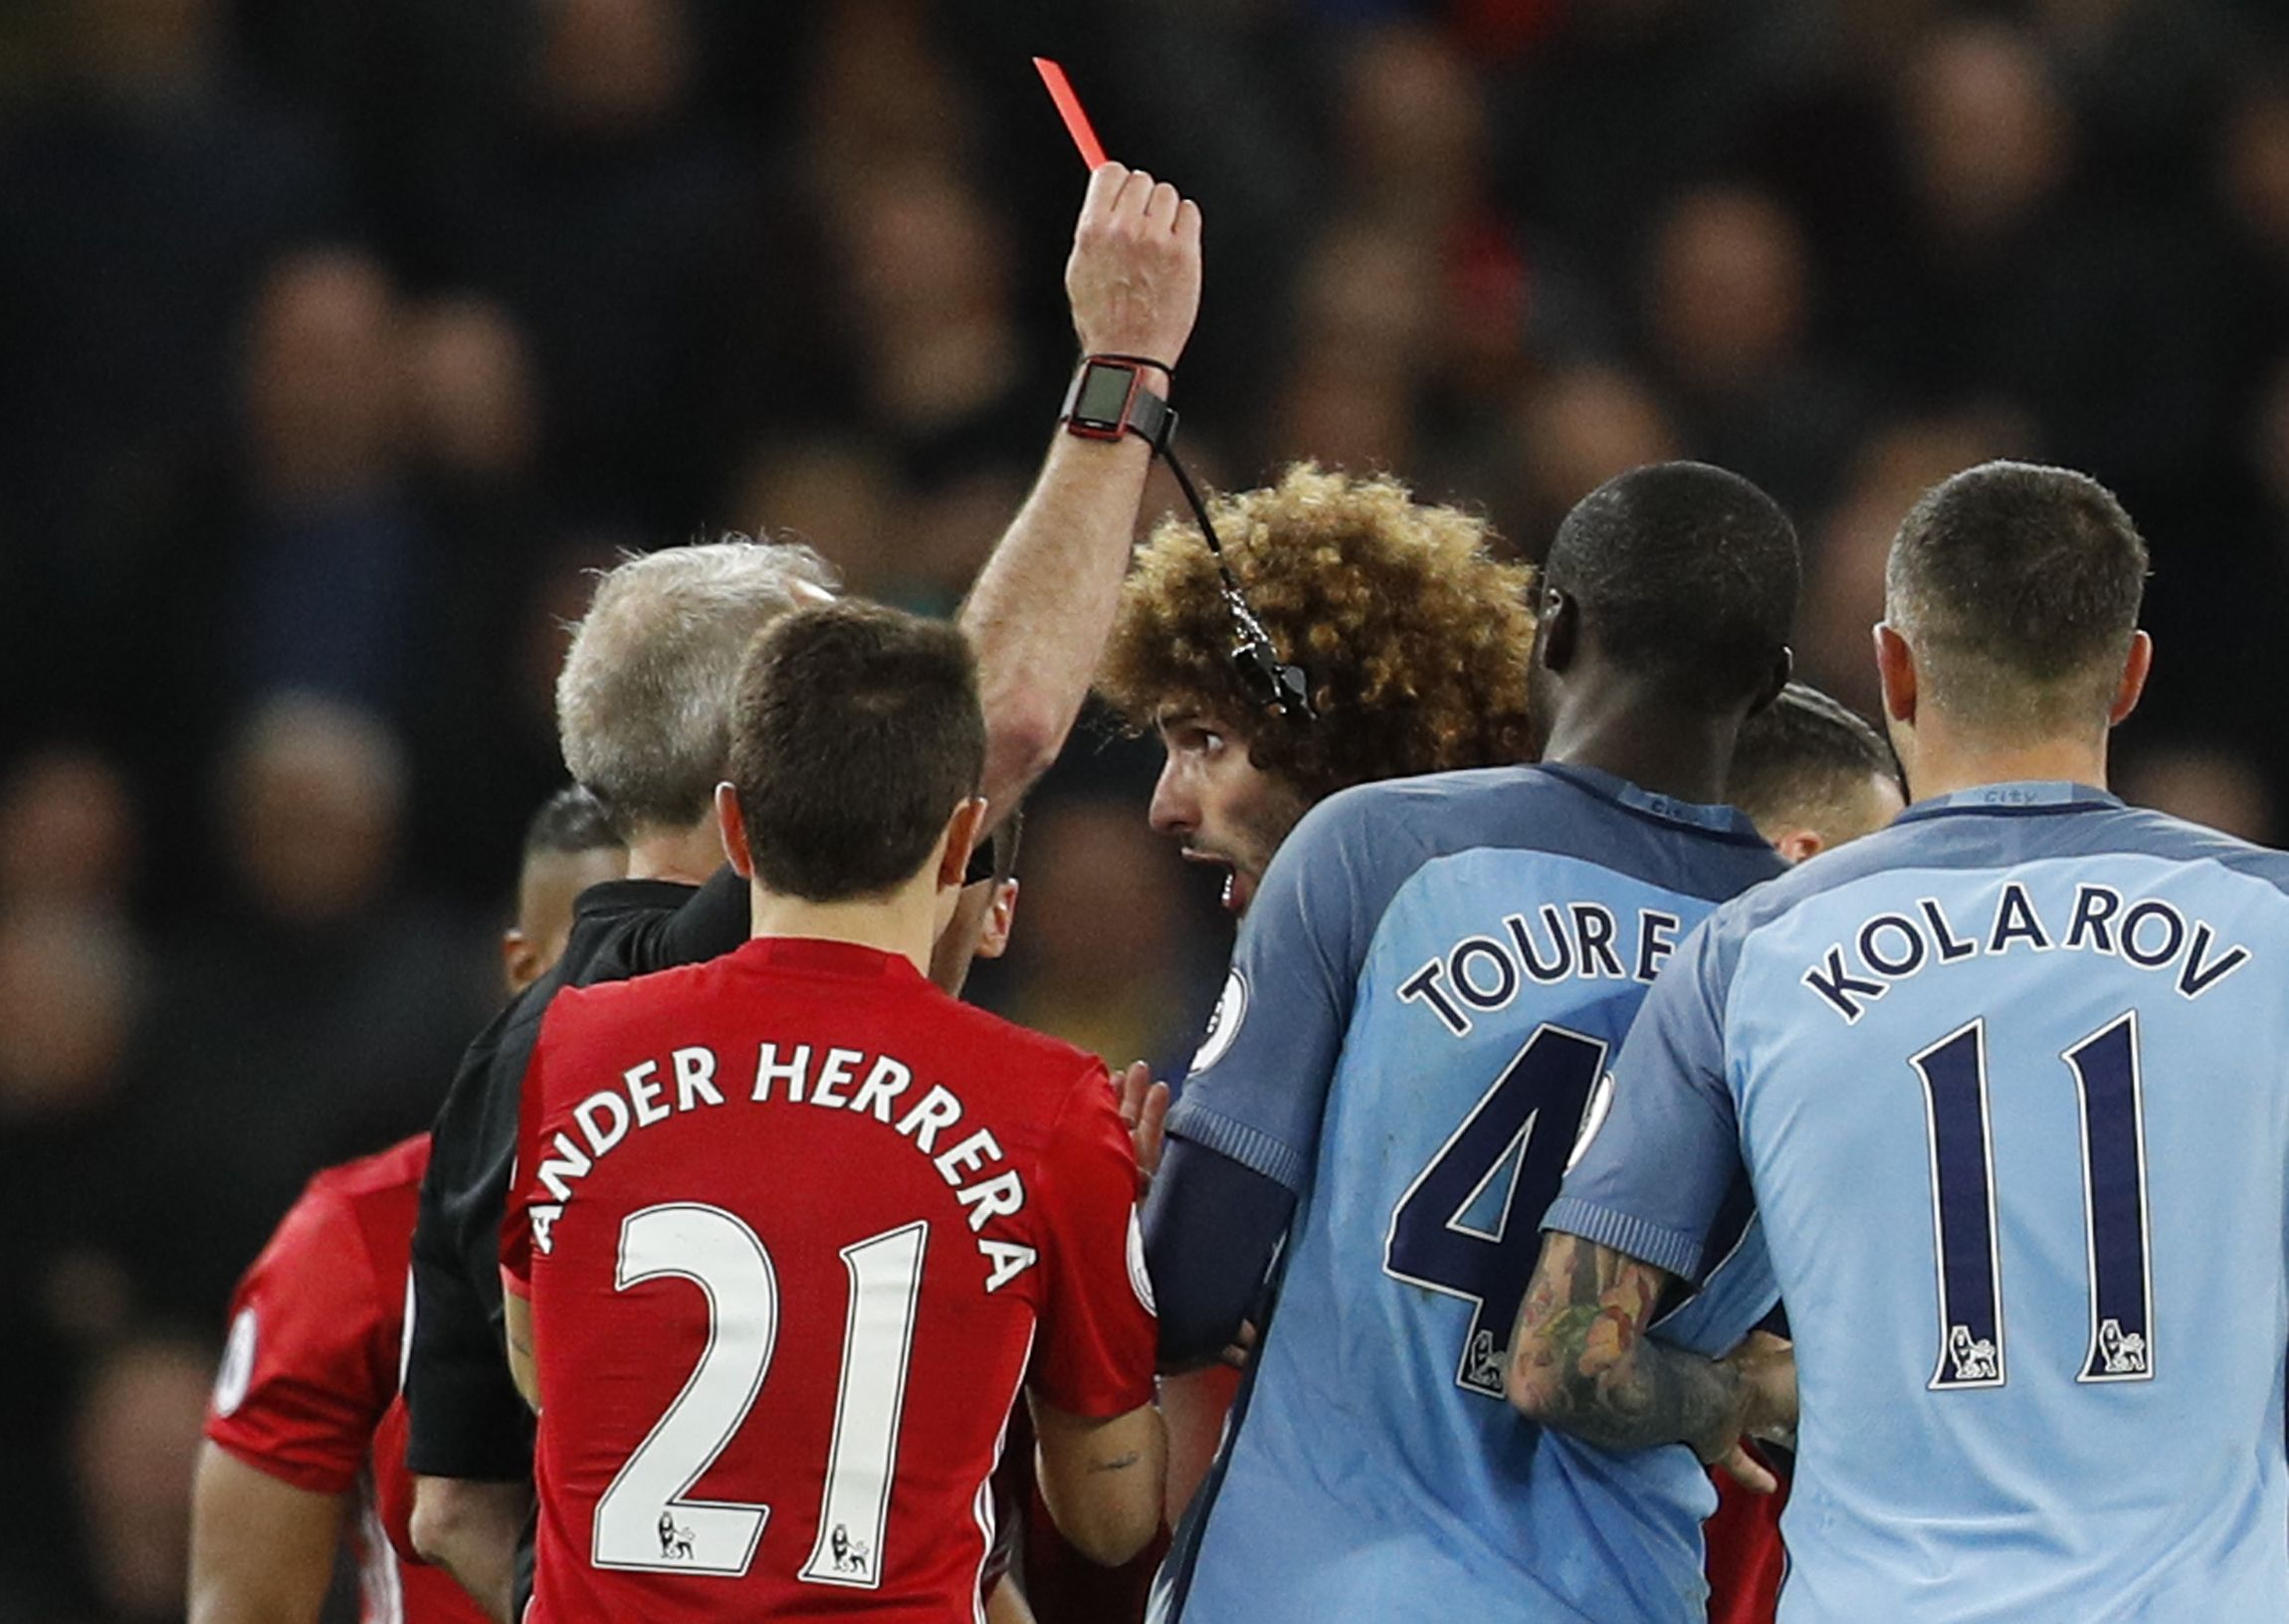 Manchester United's Marouane Fellaini is shown a red card by referee Martin Atkinson at Etihad Stadium, Manchester, April 27.